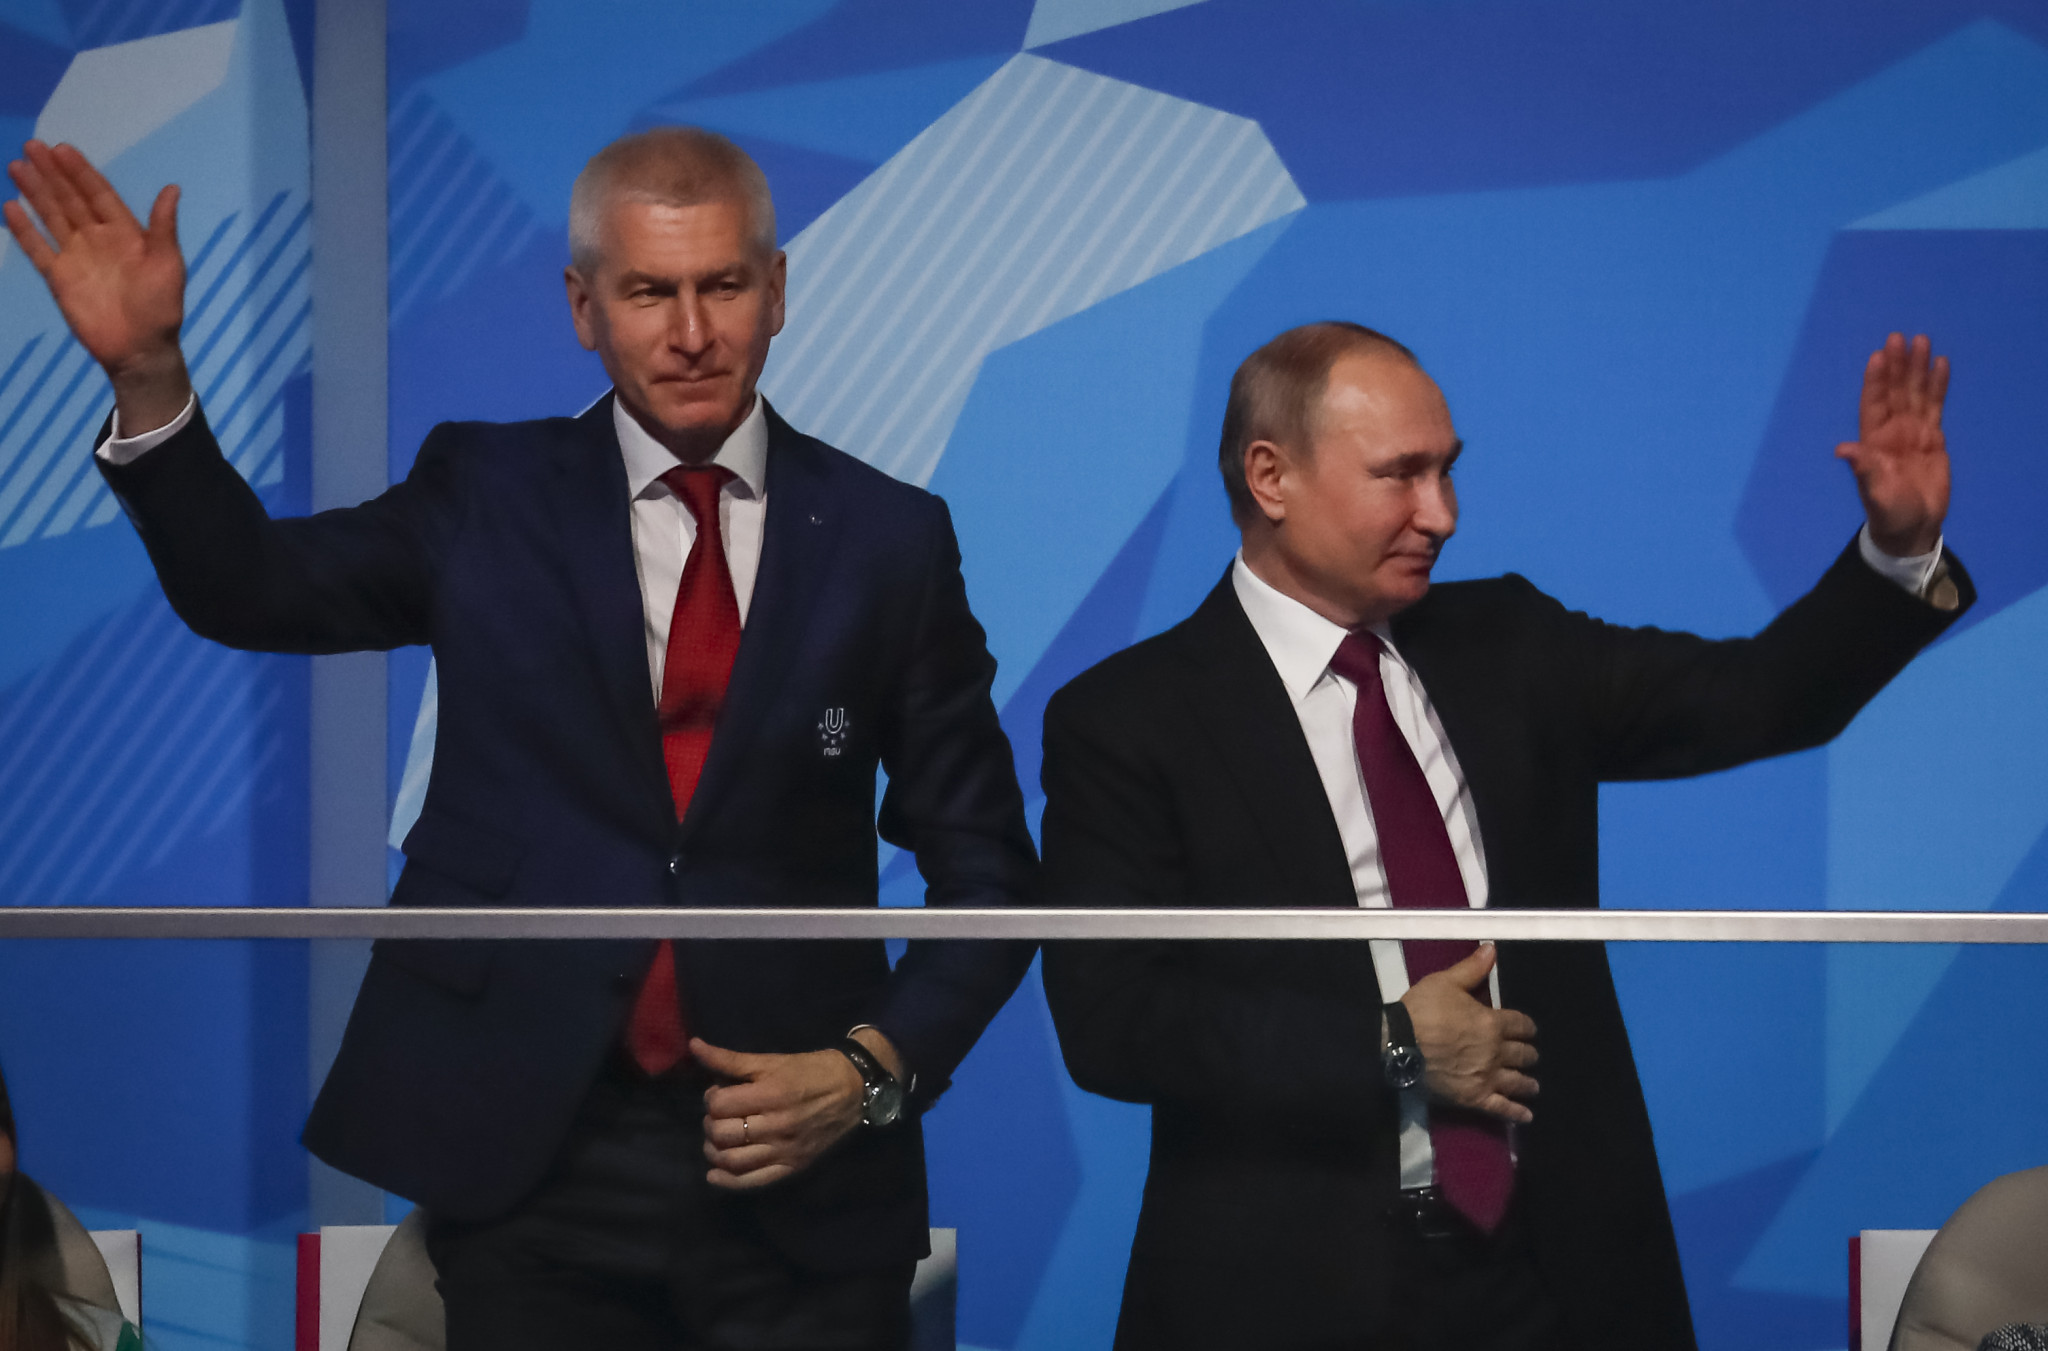 Putin opens Krasnoyarsk 2019 Winter Universiade as Opening Ceremony celebrates Siberia's history and cultural traditions